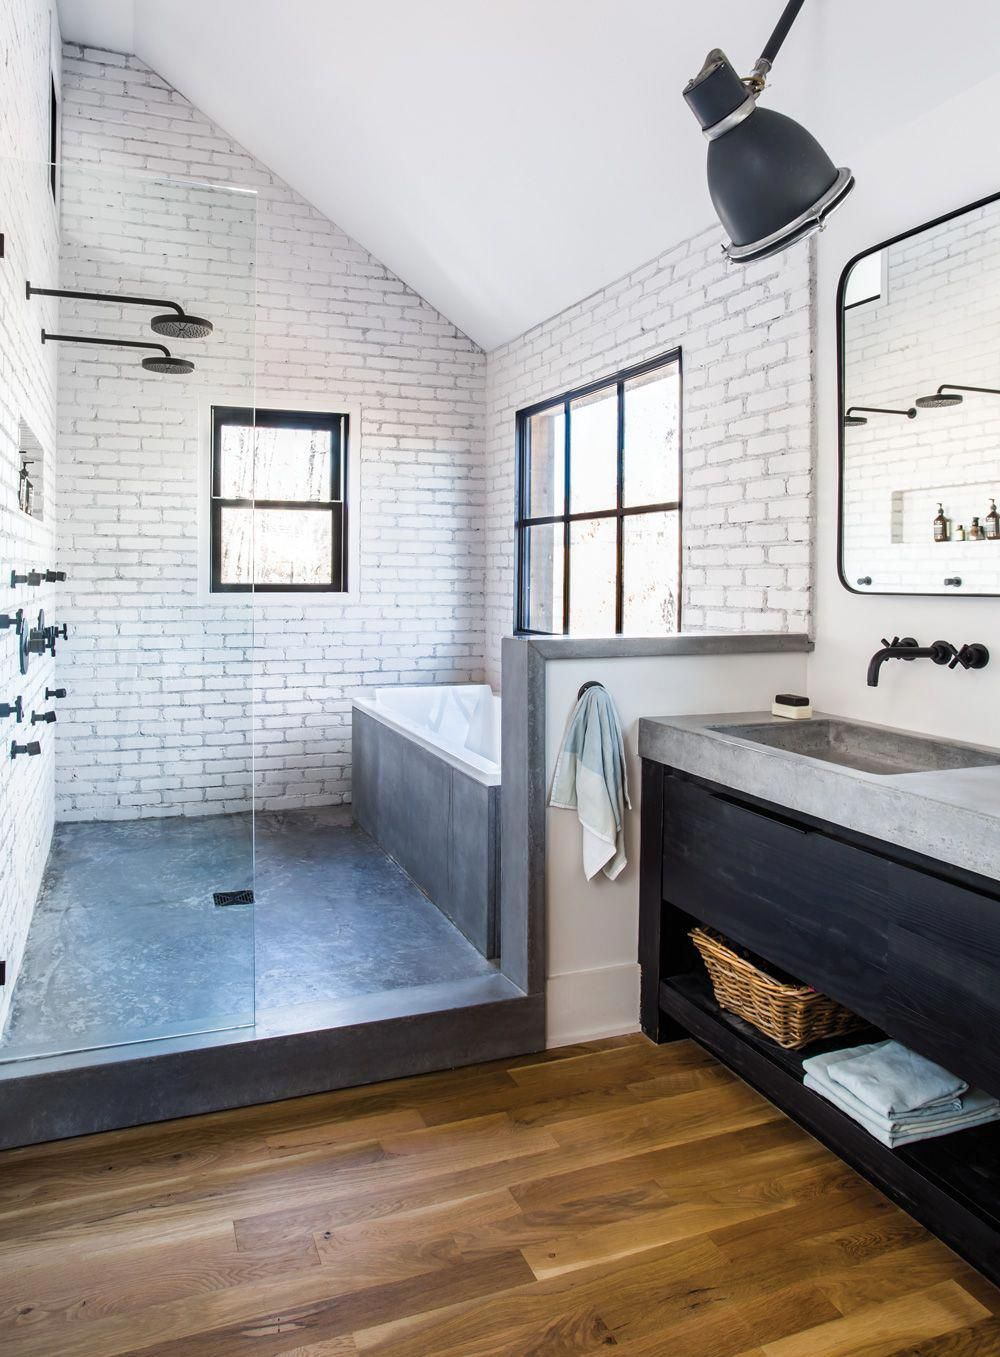 Room Envy: At Serenbe, a master bath with a modern farmhouse aesthetic - Atlanta Magazine